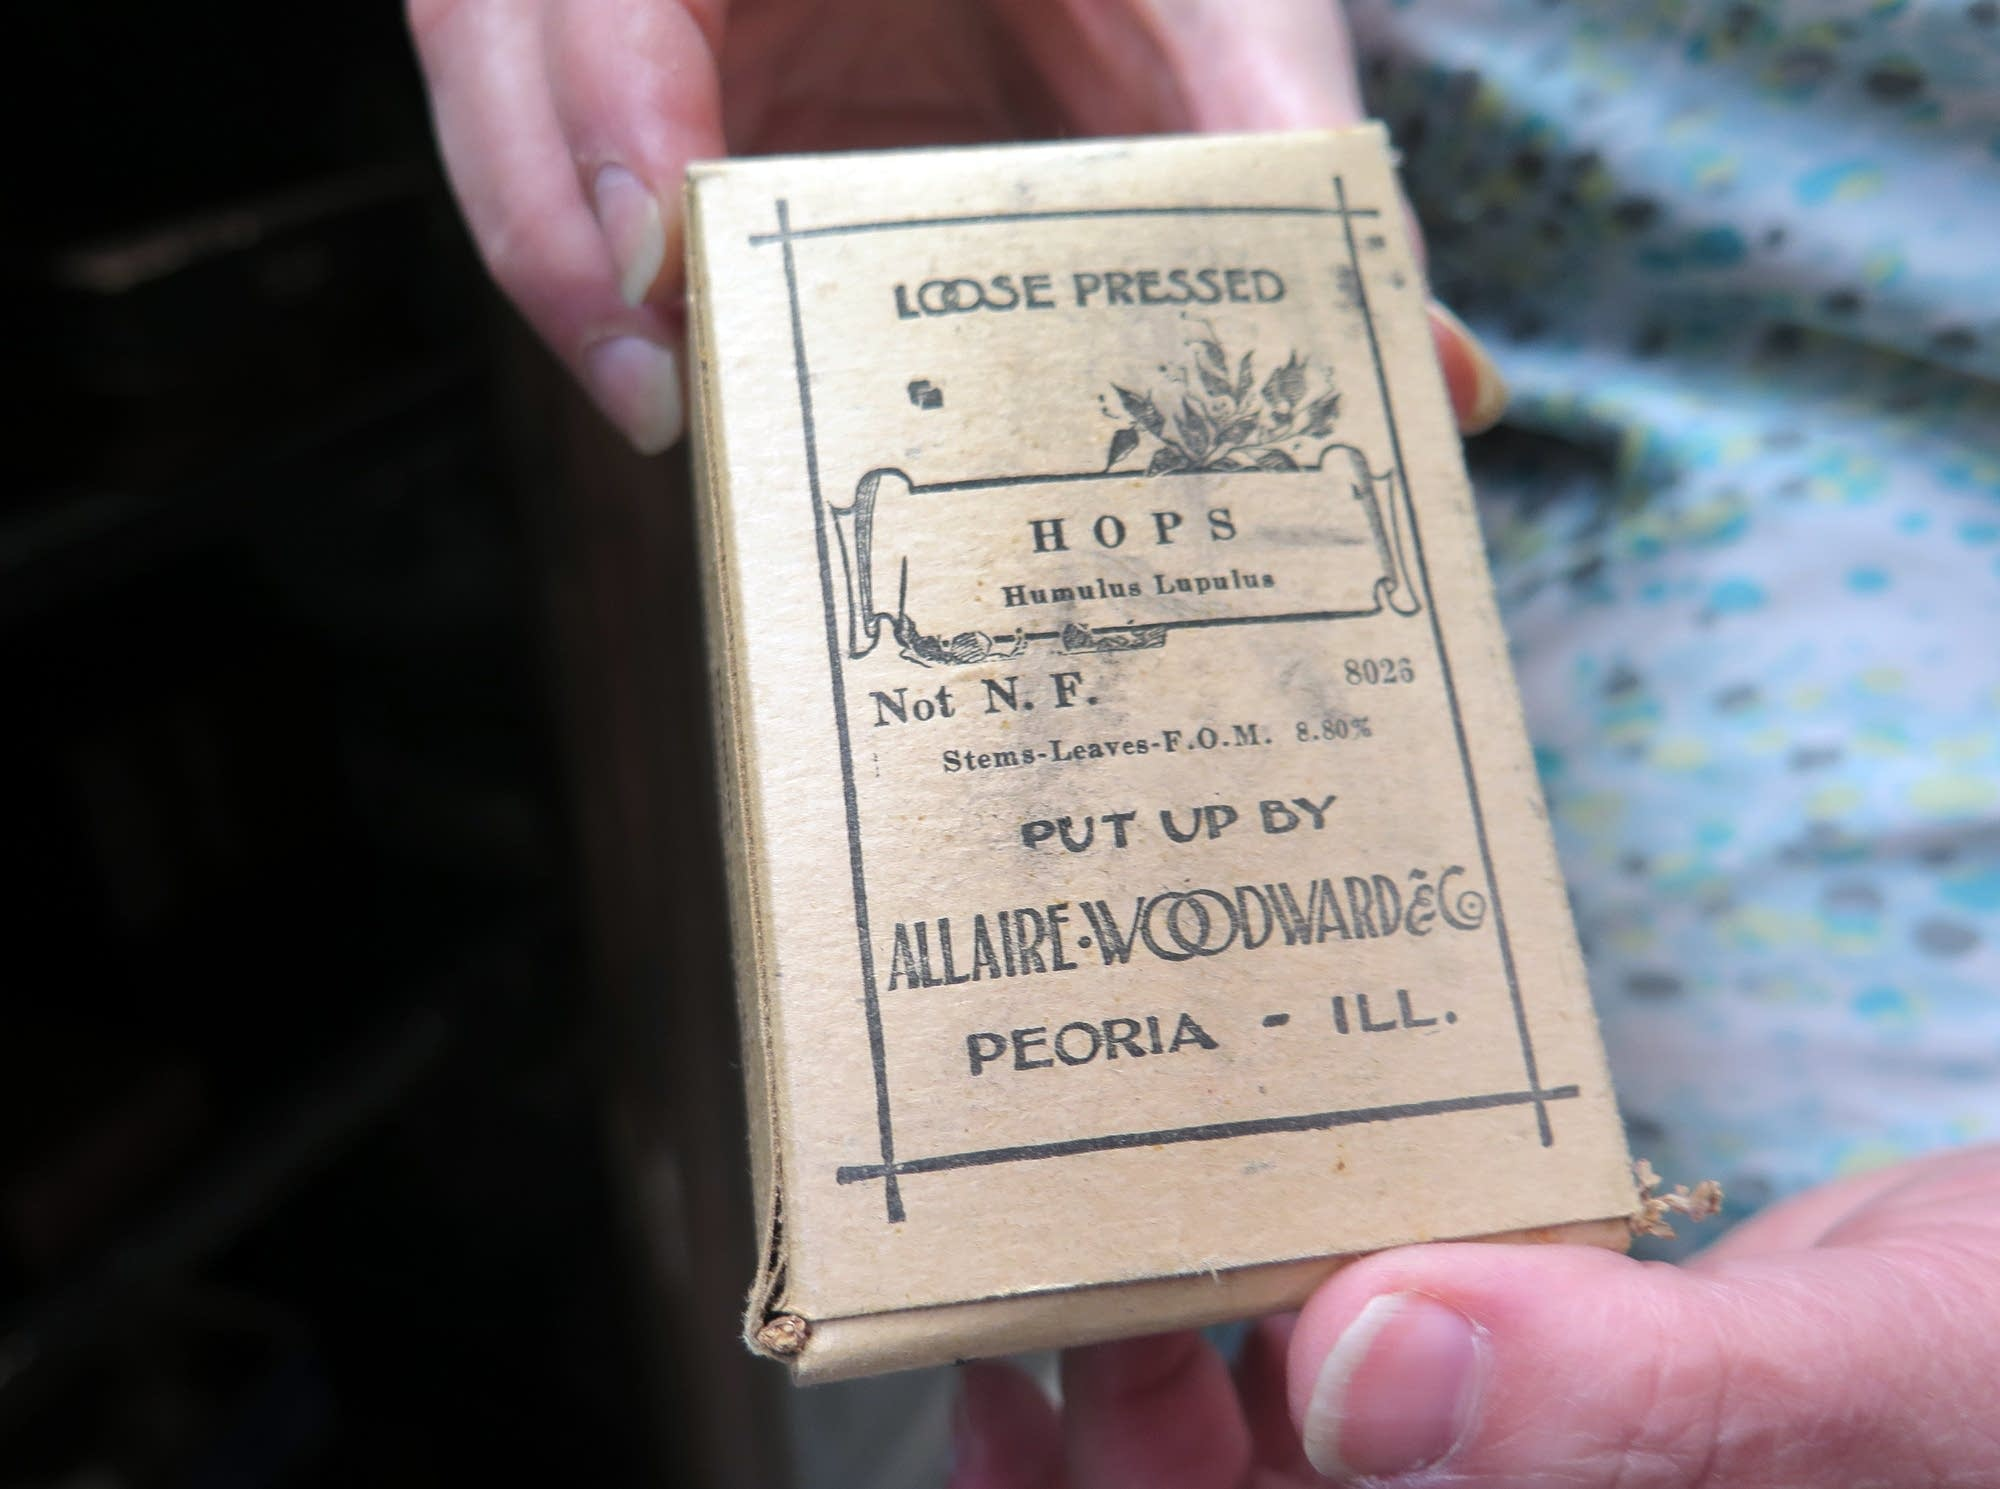 The curator of the Wangensteen Library holds up a box on medicinal hops.